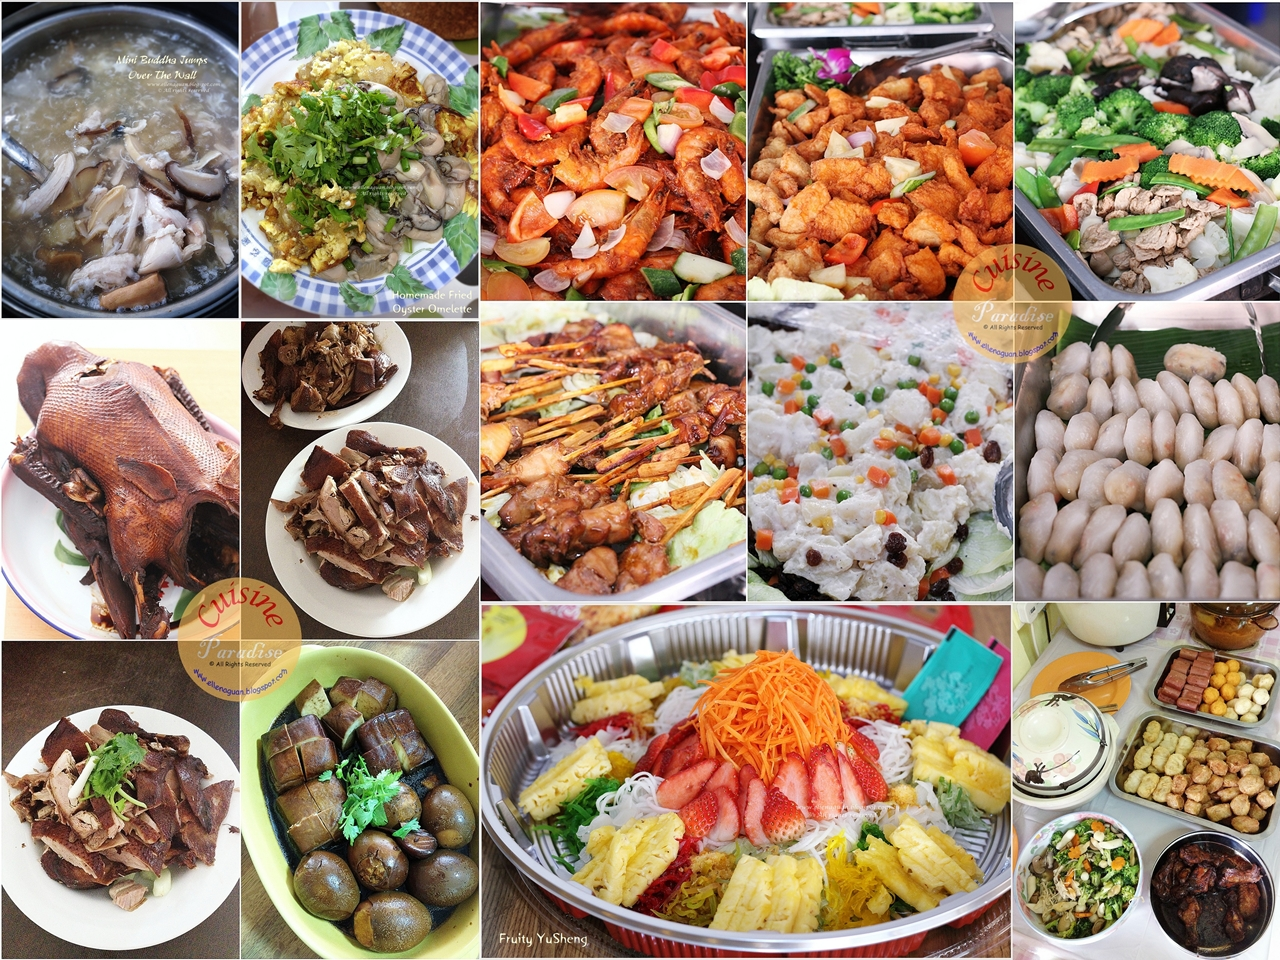 Cuisine paradise singapore food blog recipes reviews for Site cuisine